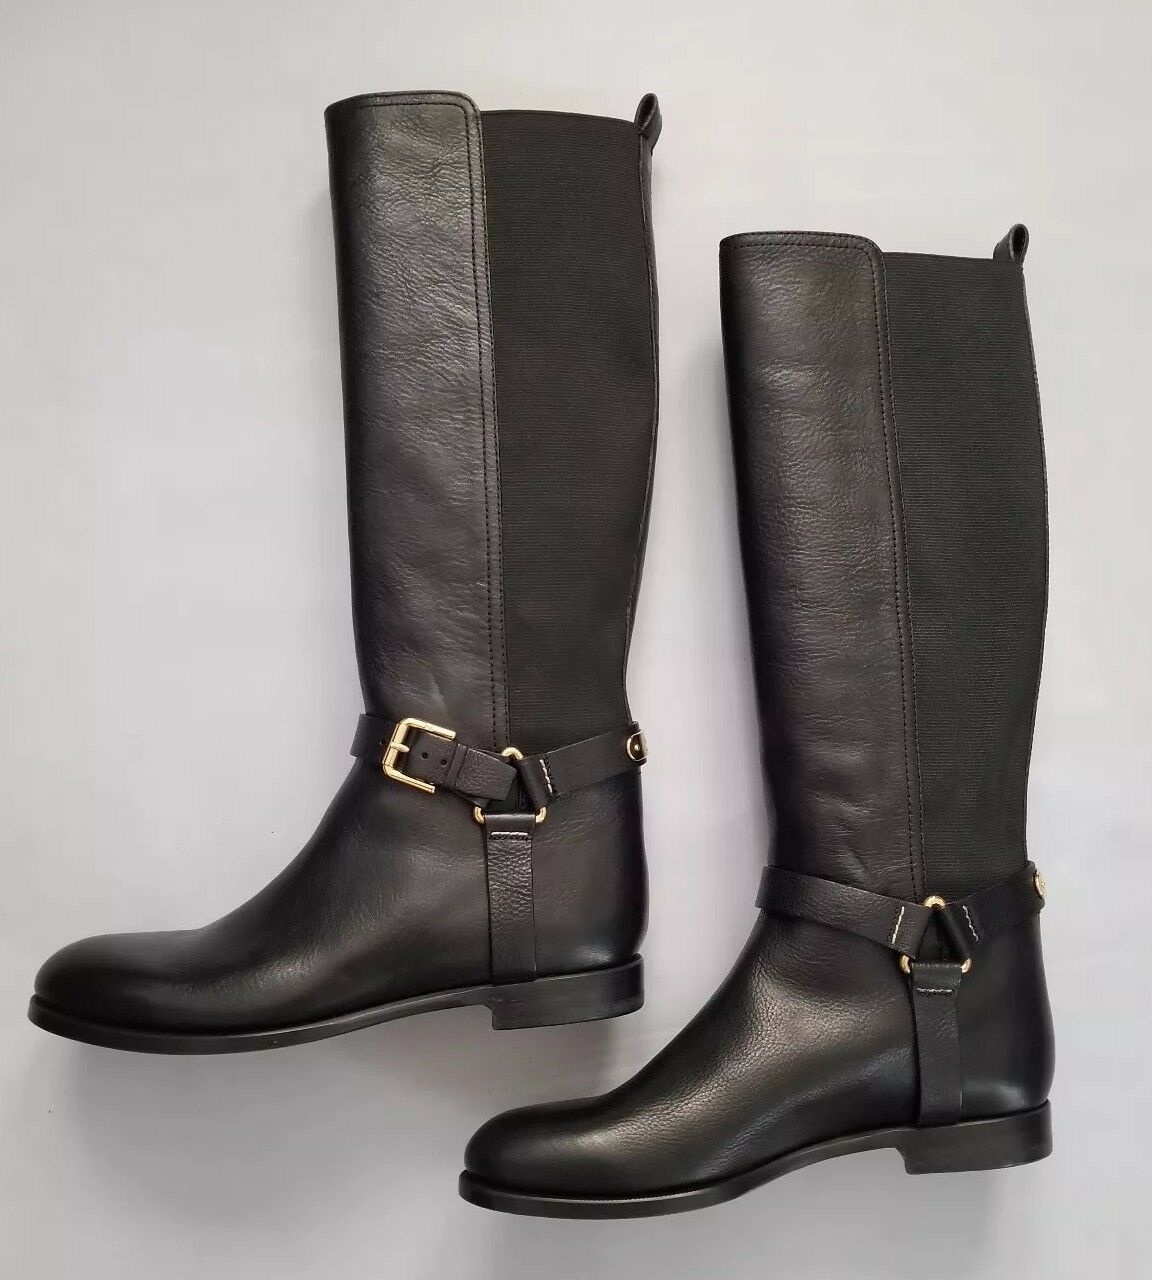 RALPH LAUREN COLLECTION SABEEN BLACK VACHETTA LEATHER RIDING BOOTS SZ 10B ITALY